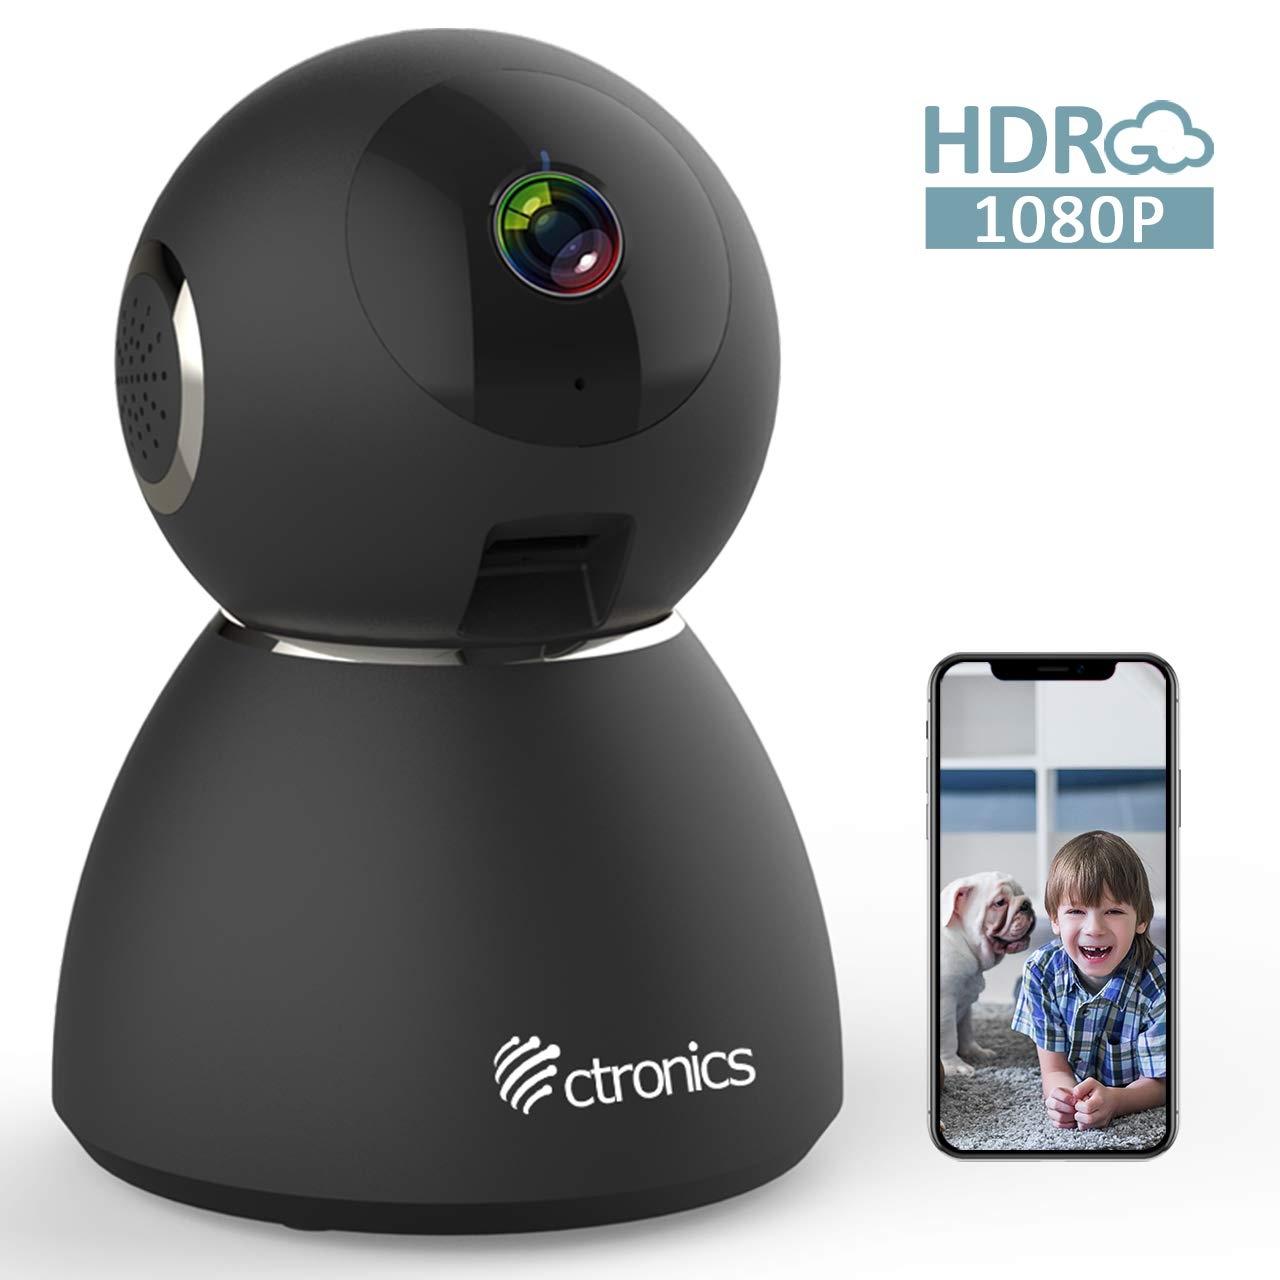 25fps 1080P HDR WiFi Security Camera Indoor, Ctronics IP Security Camera with Upgraded Night Vision, Motion & Sound Detection, Two-Way Audio, 355°Angle for Baby, Pet, Home Surveillance by Ctronics